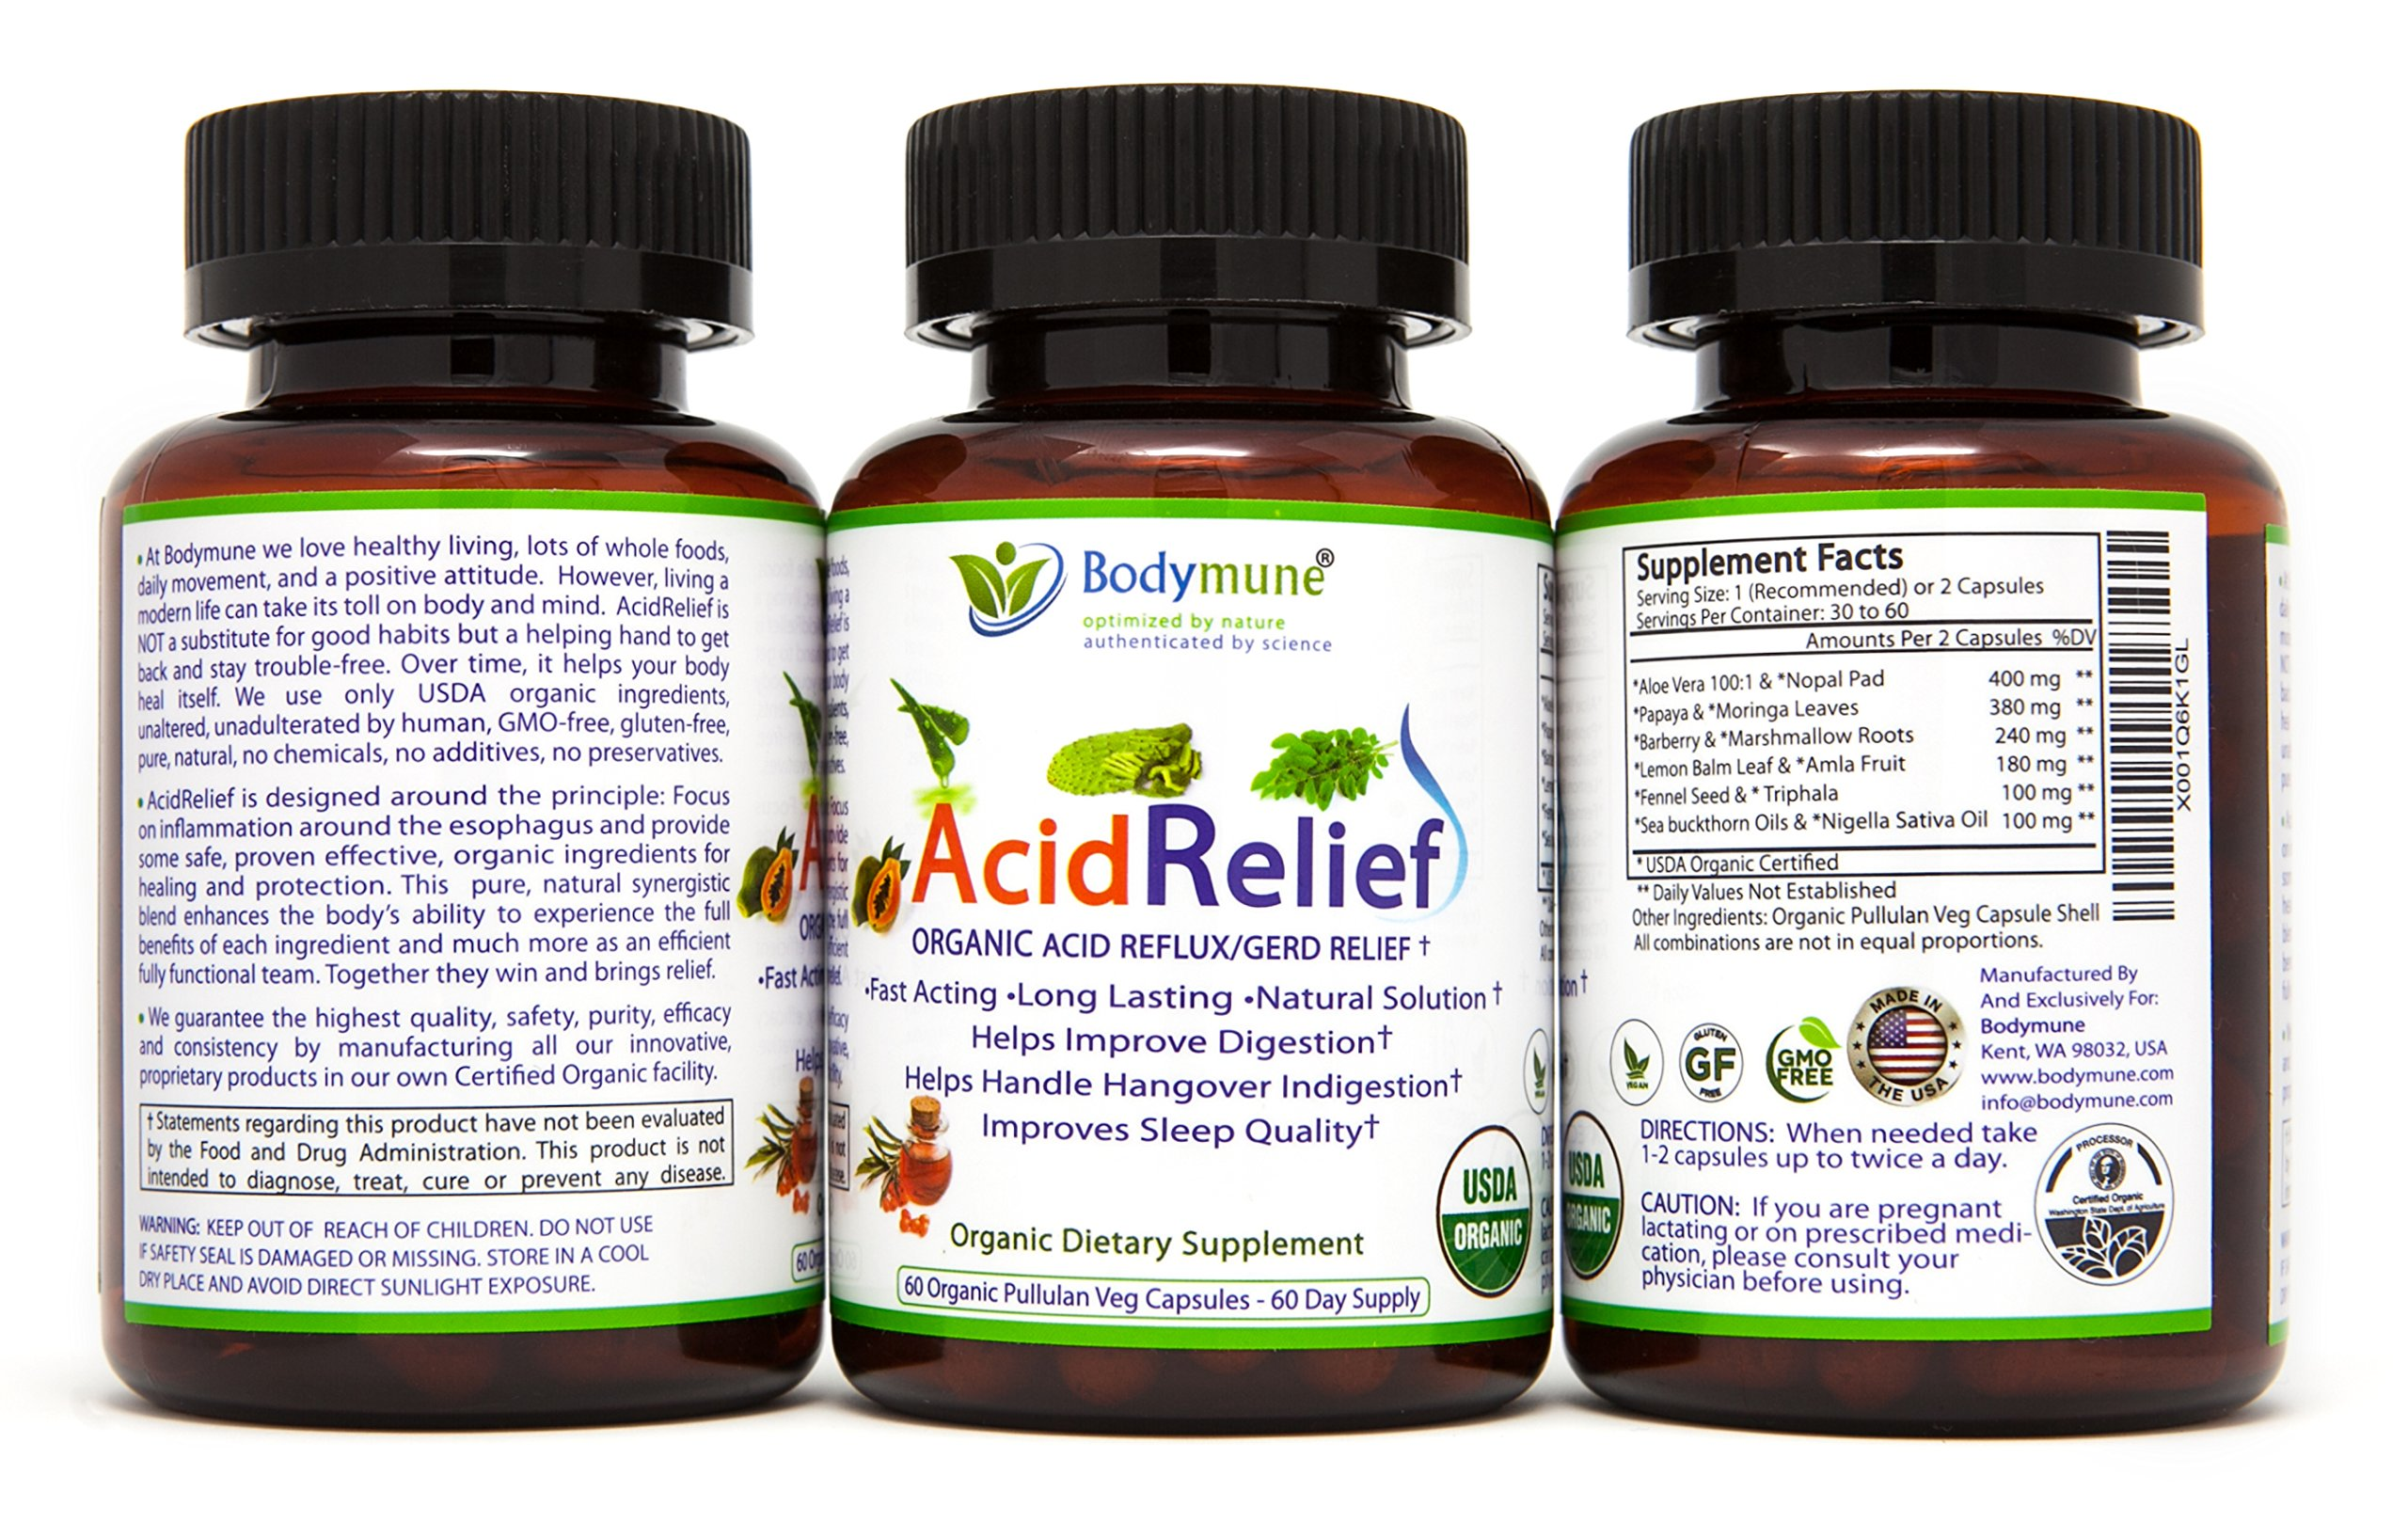 Acid Relief, Antacid, GERD Relief, Indigestion Relief All Natural USDA Organic 100% Vegan Nutritional Support by Bodymune | Acid Reflux Relief, Heartburn Relief, Stomachaches, Digestion Help - 60 Cap by Bodymune (Image #1)